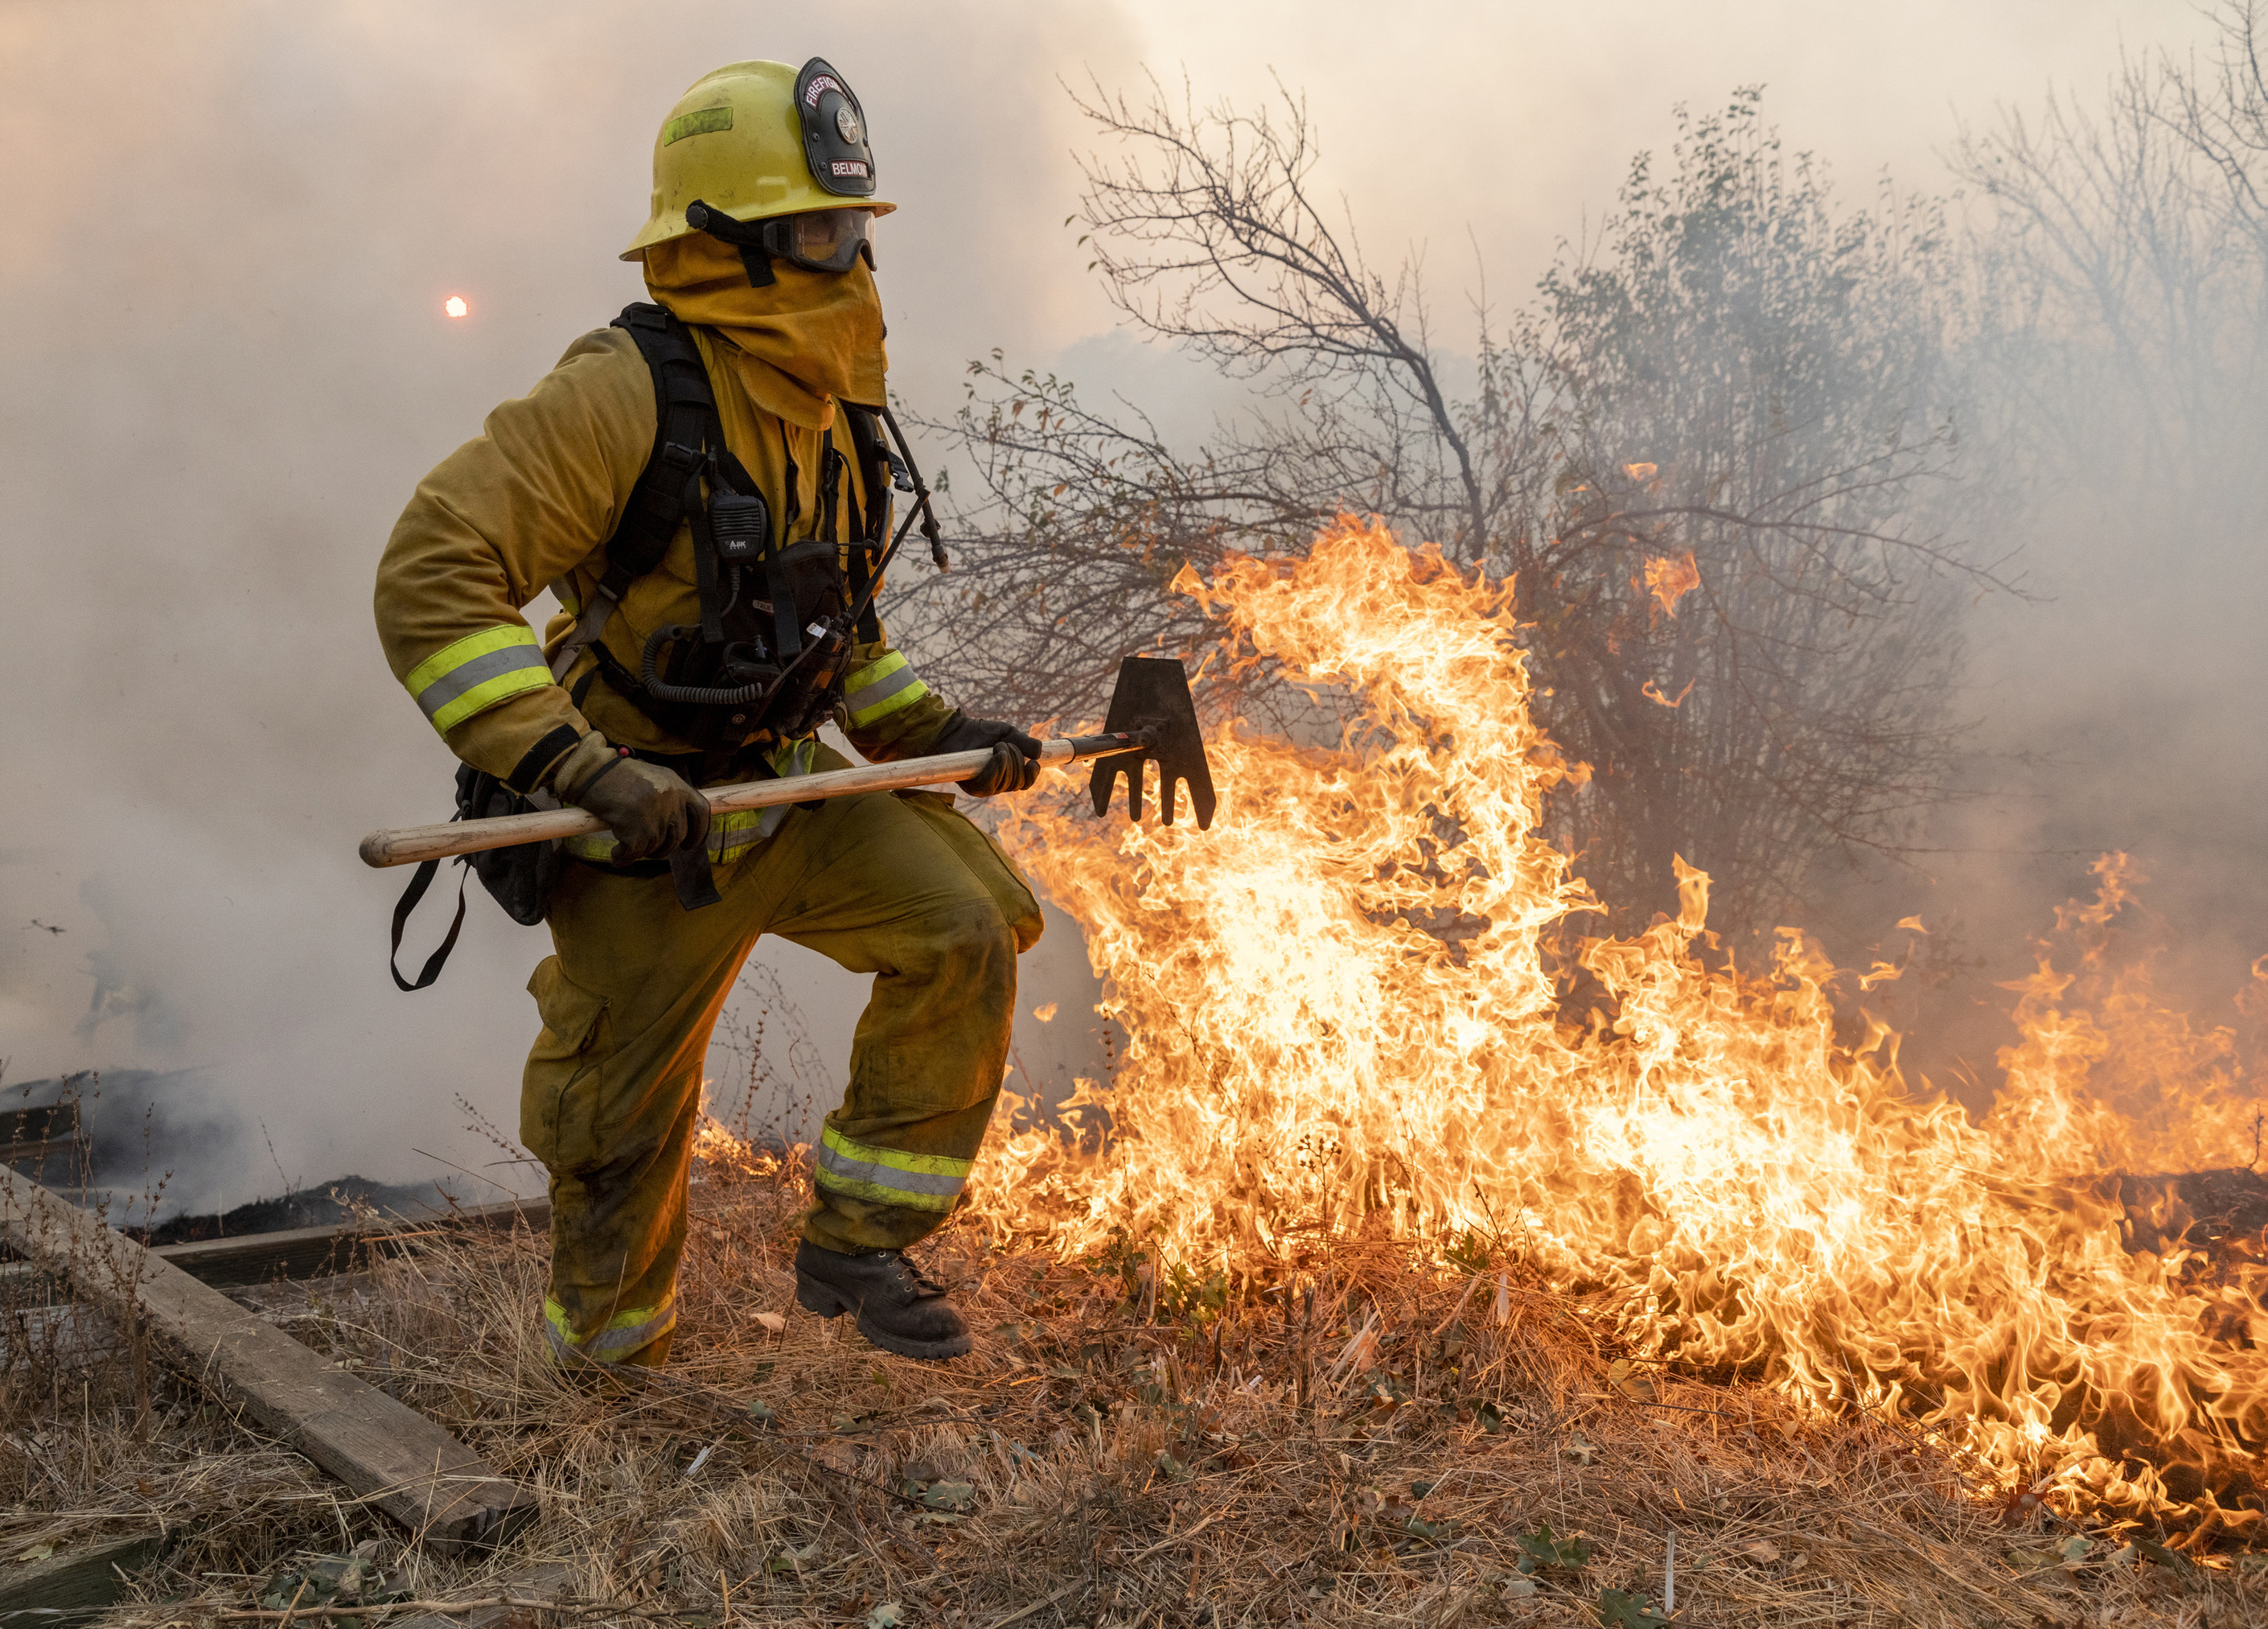 A firefighter from San Matteo helps fight the Kincade Fire in Sonoma County, Calif., on Sunday, Oct. 27, 2019. (AP Photo/Ethan Swope)